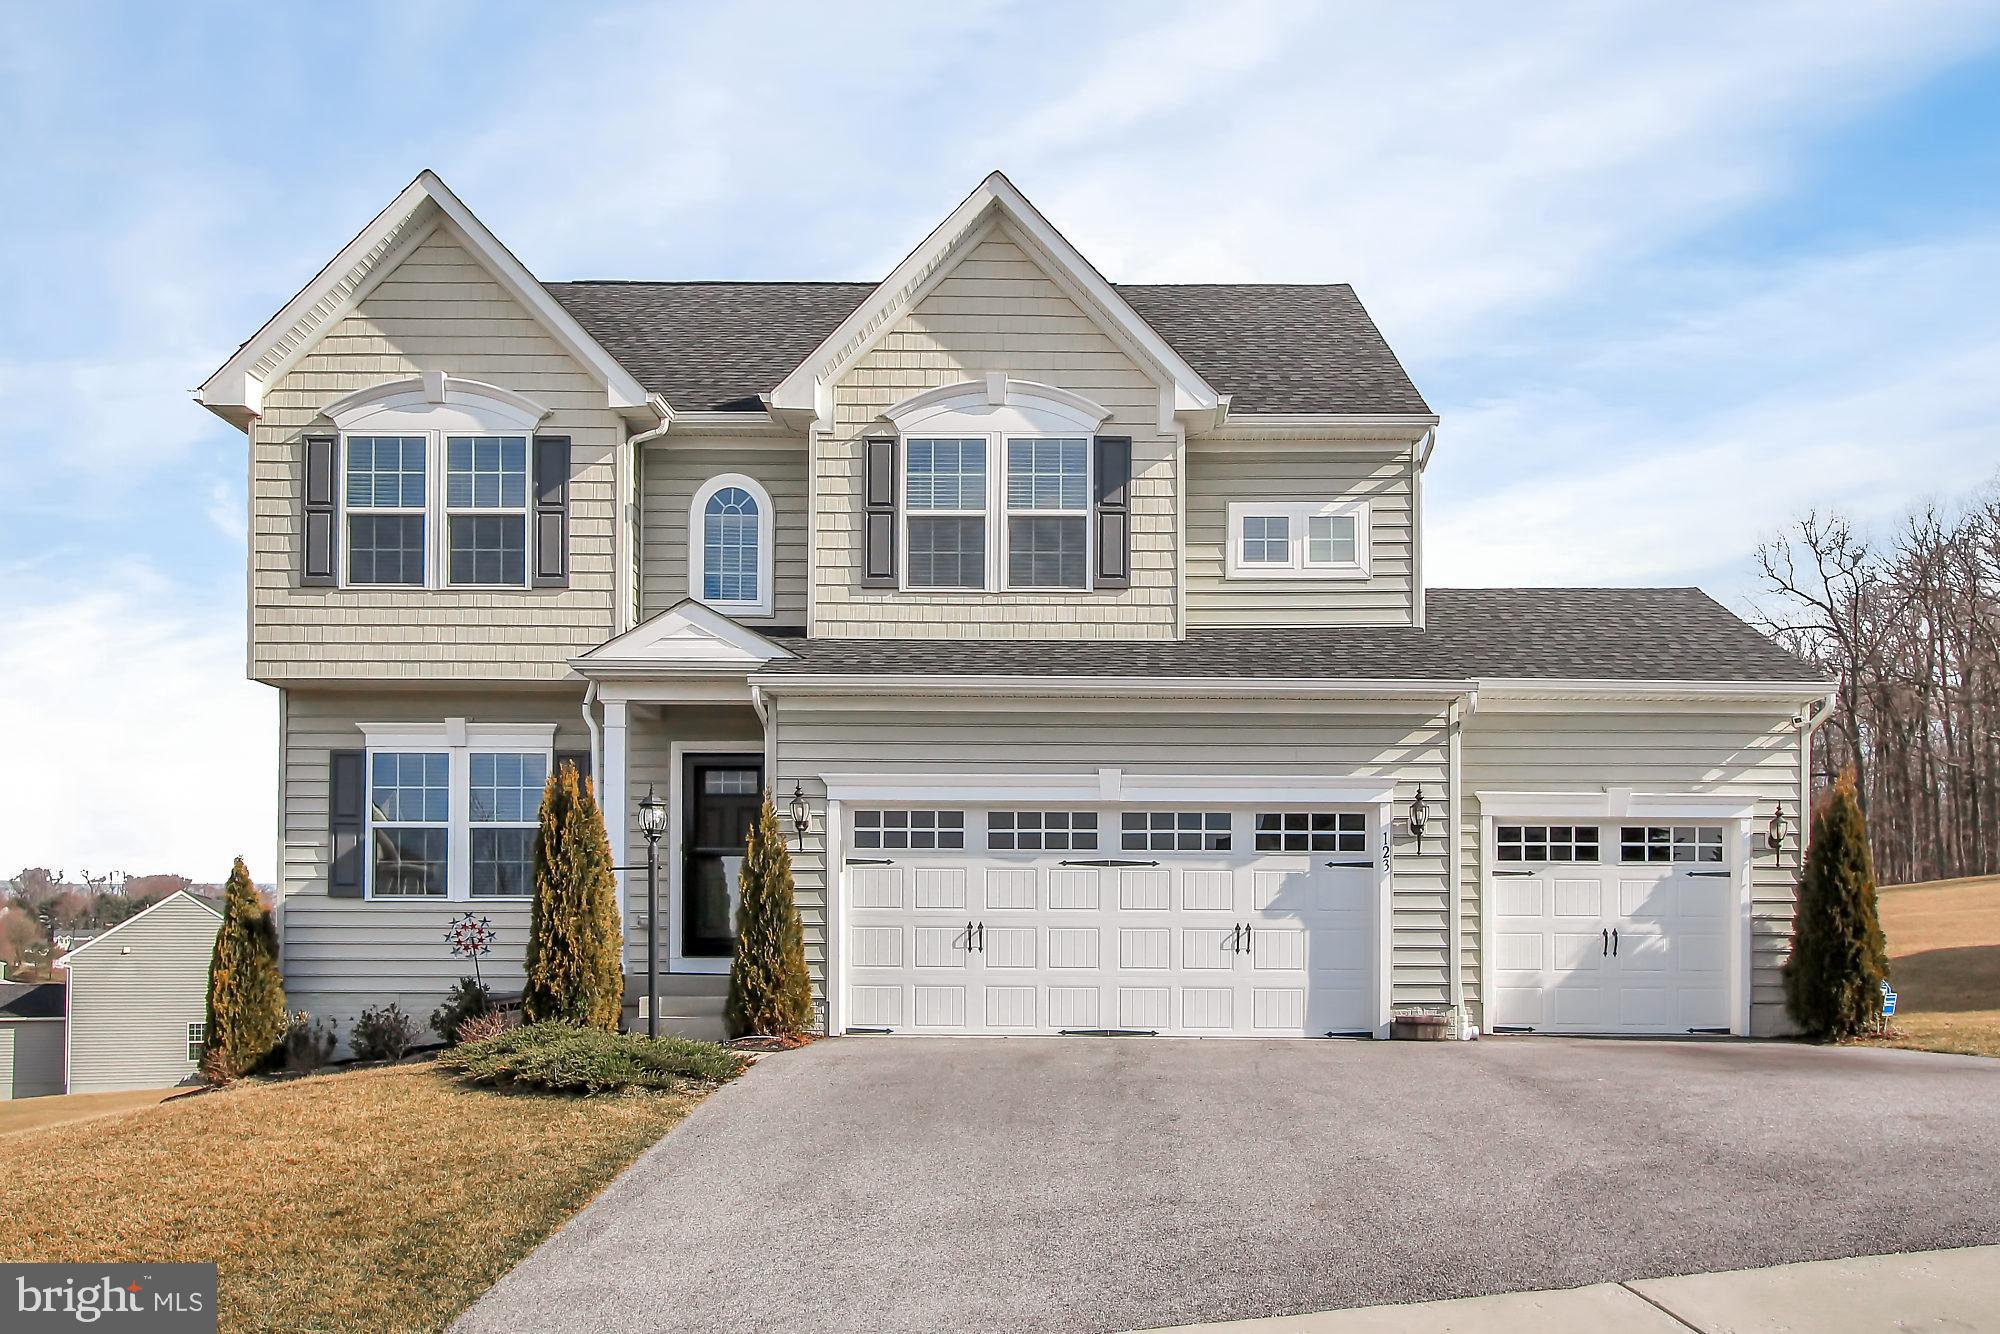 123 GLENRAY COURT, NEW FREEDOM, PA 17349